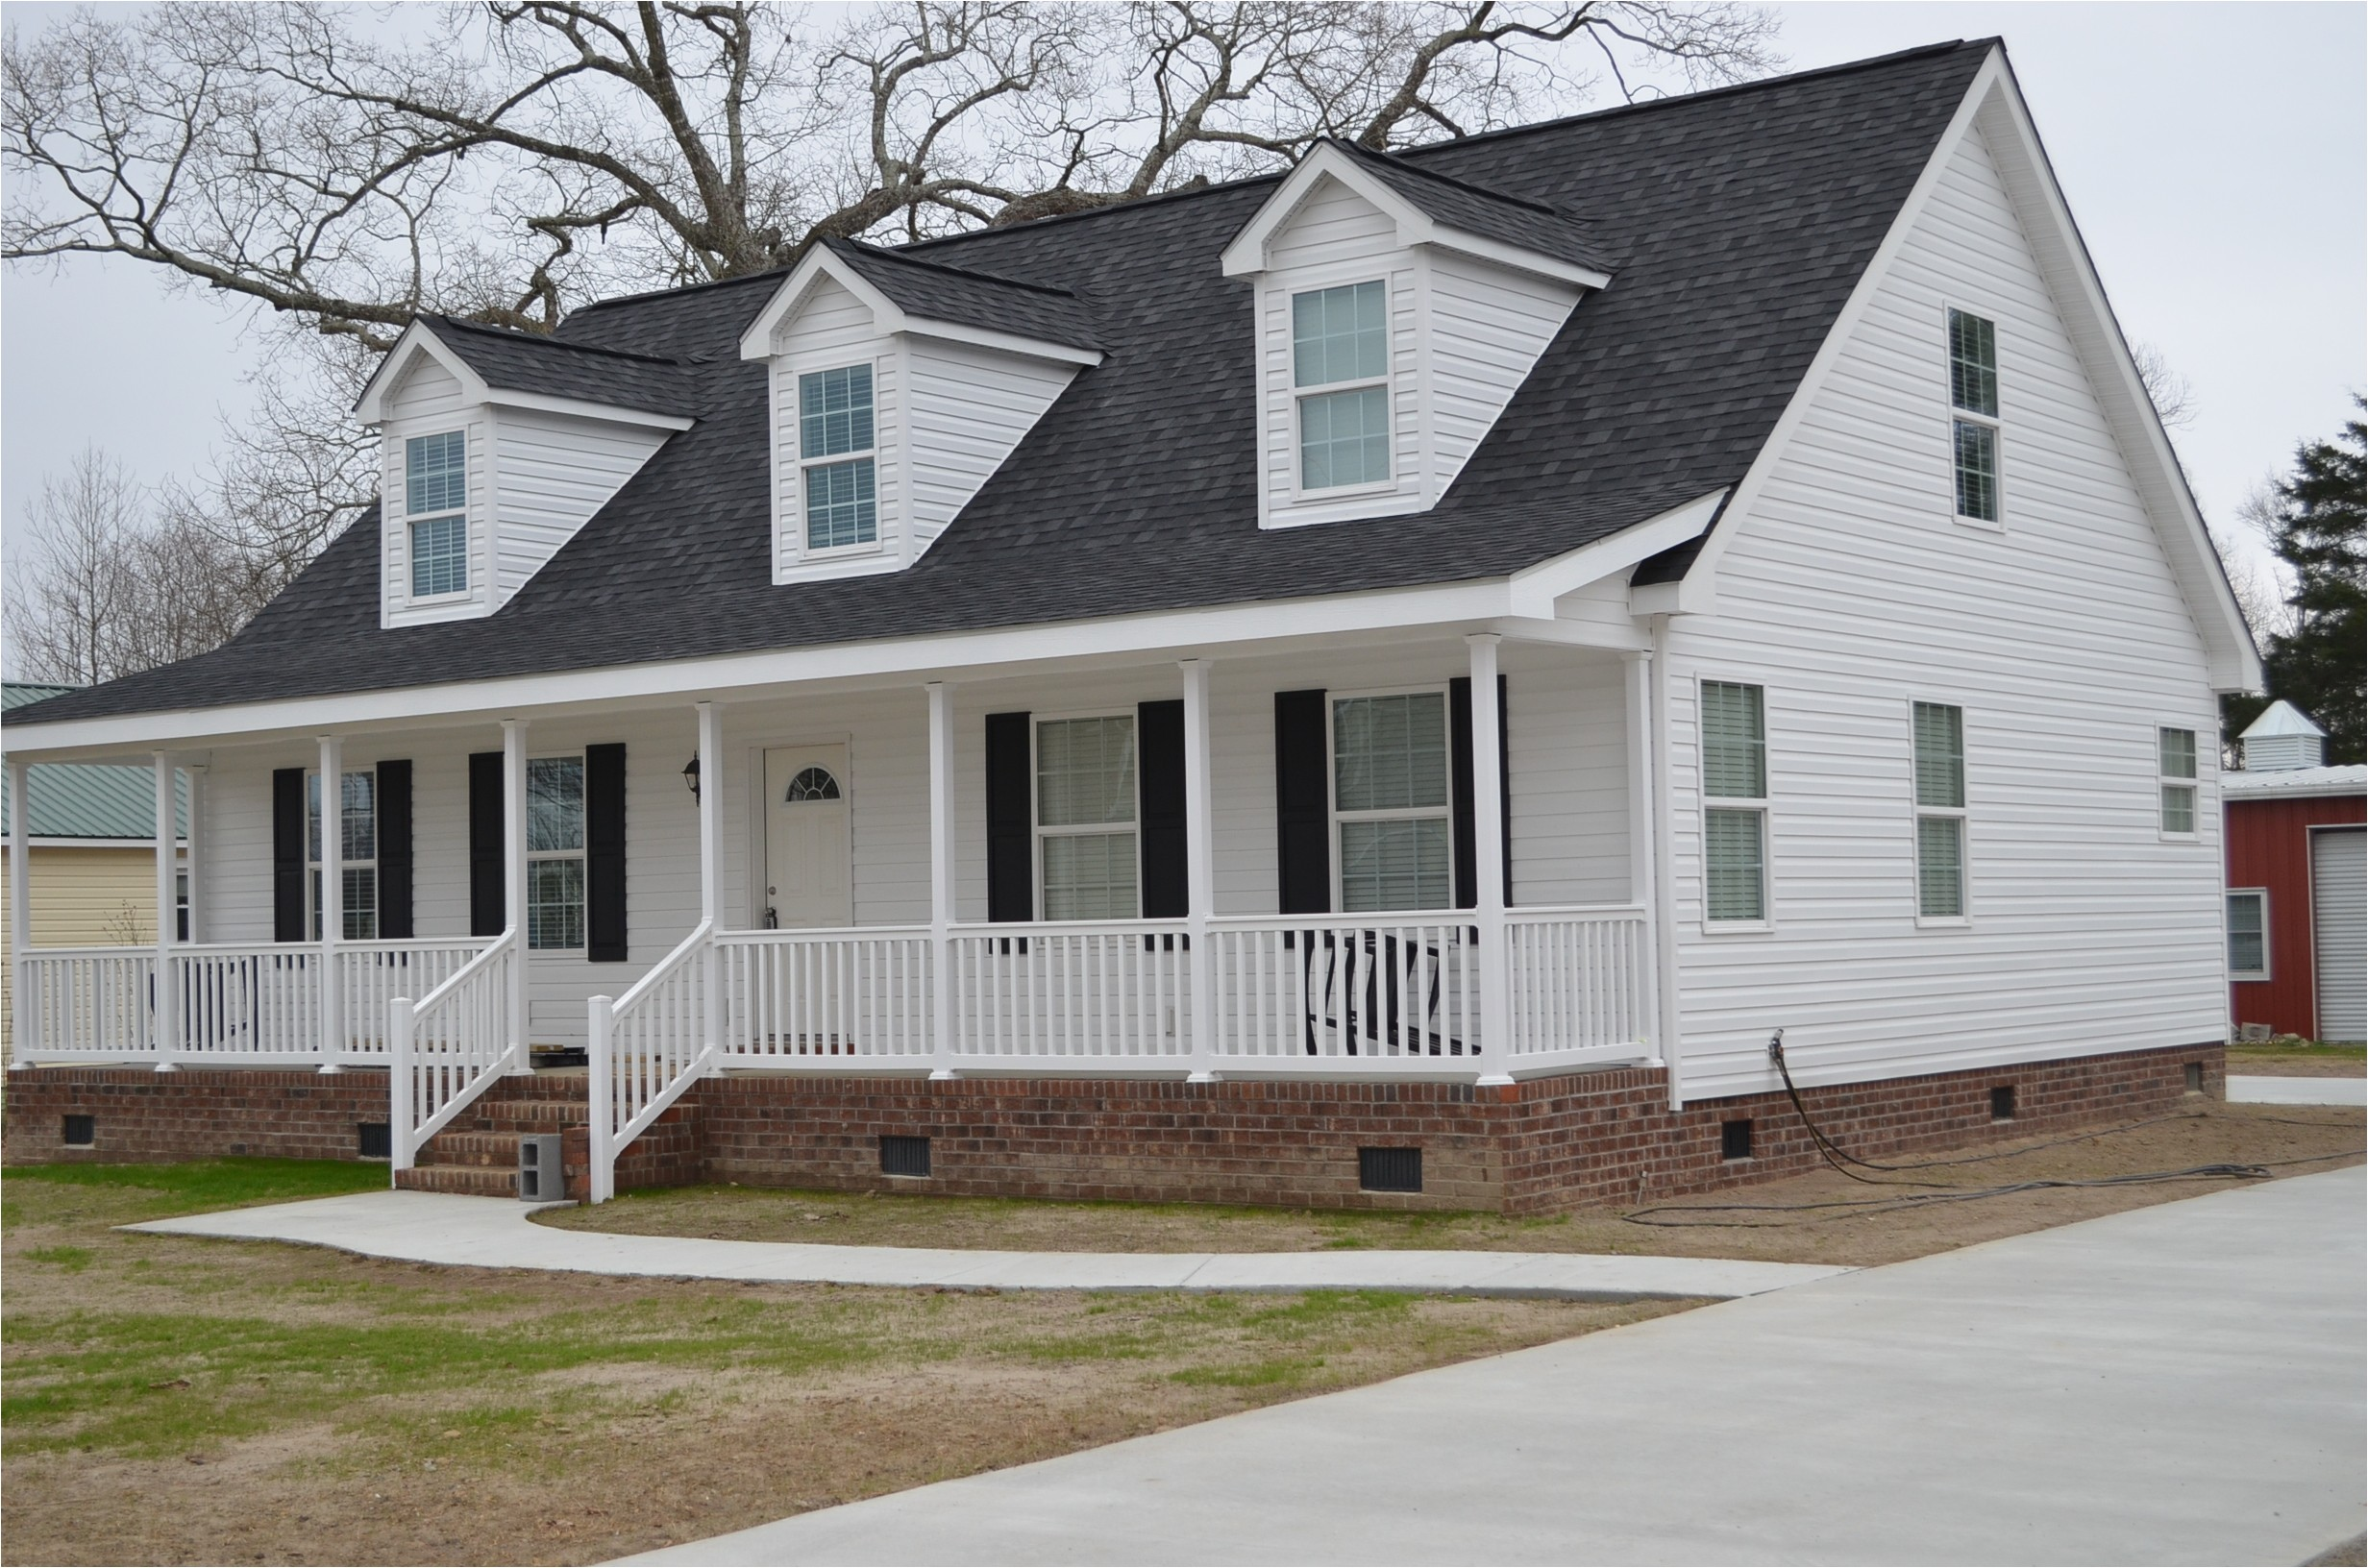 Modular Homes for Sale Goldsboro Nc Modern Housing Modular Maufactuerd Homes Eastern Nc Pictures Prices